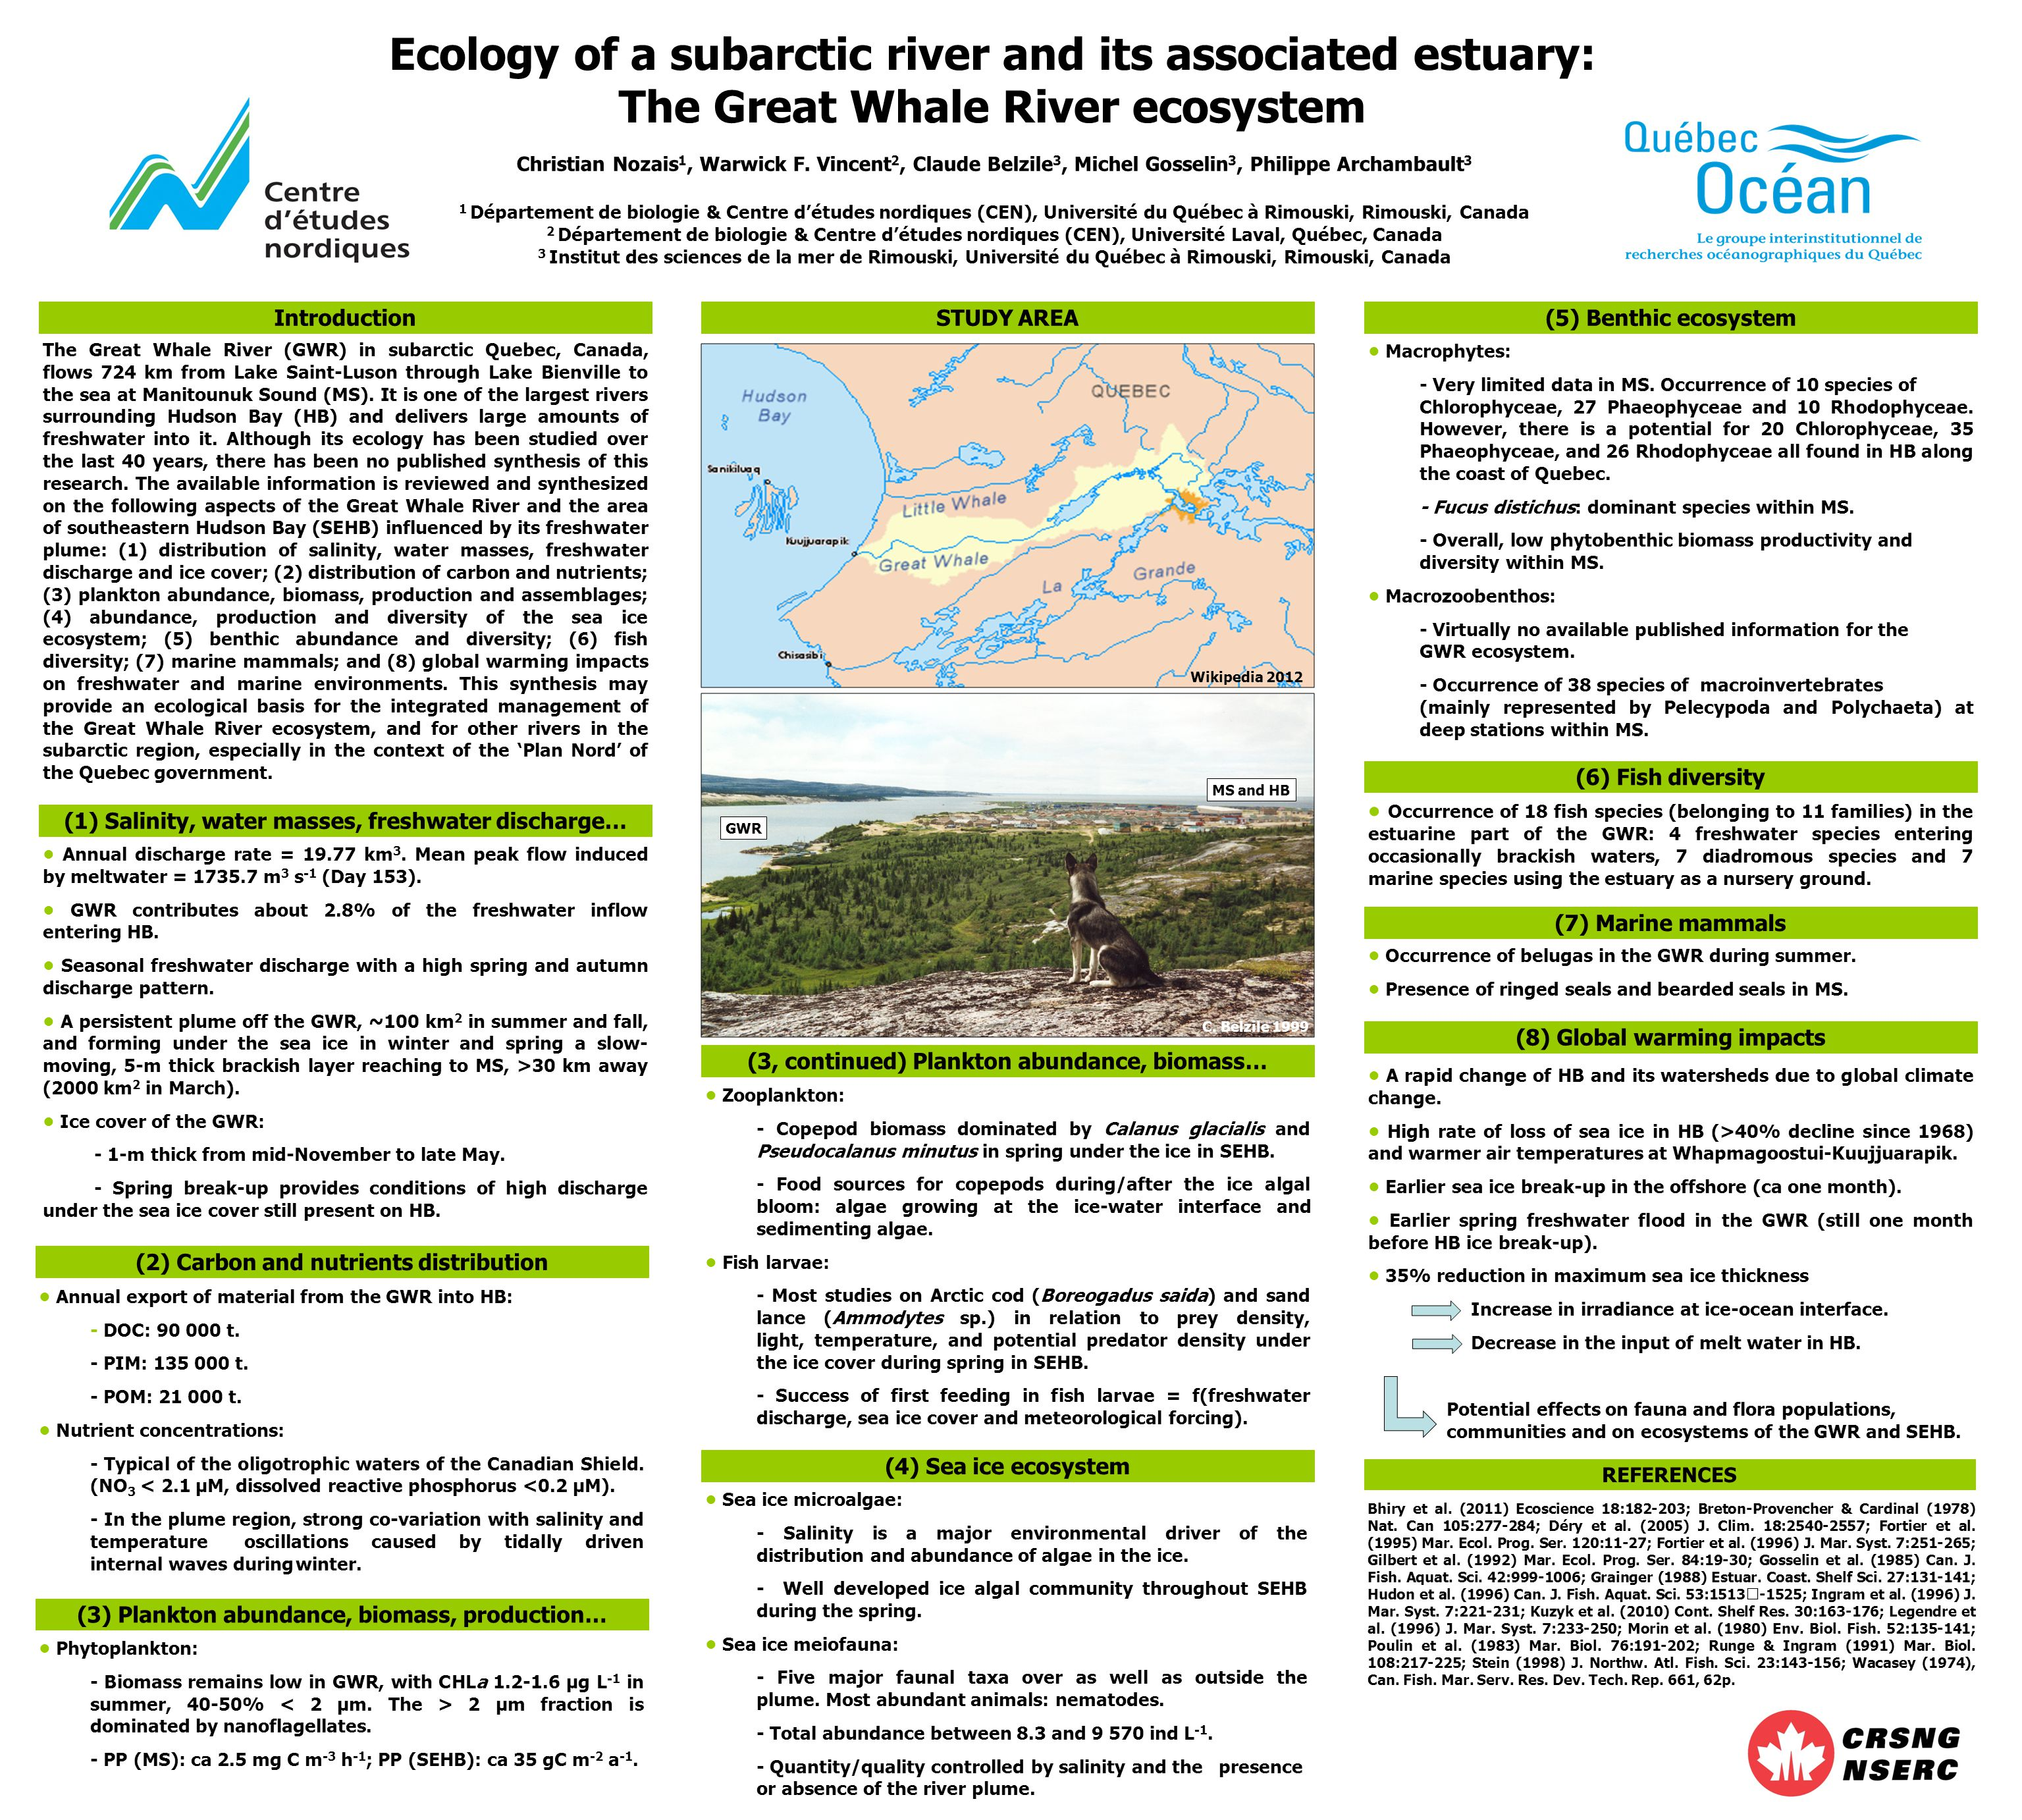 (1) Salinity, water masses, freshwater discharge… STUDY AREA (4) Sea ice ecosystem (6) Fish diversity Ecology of a subarctic river and its associated